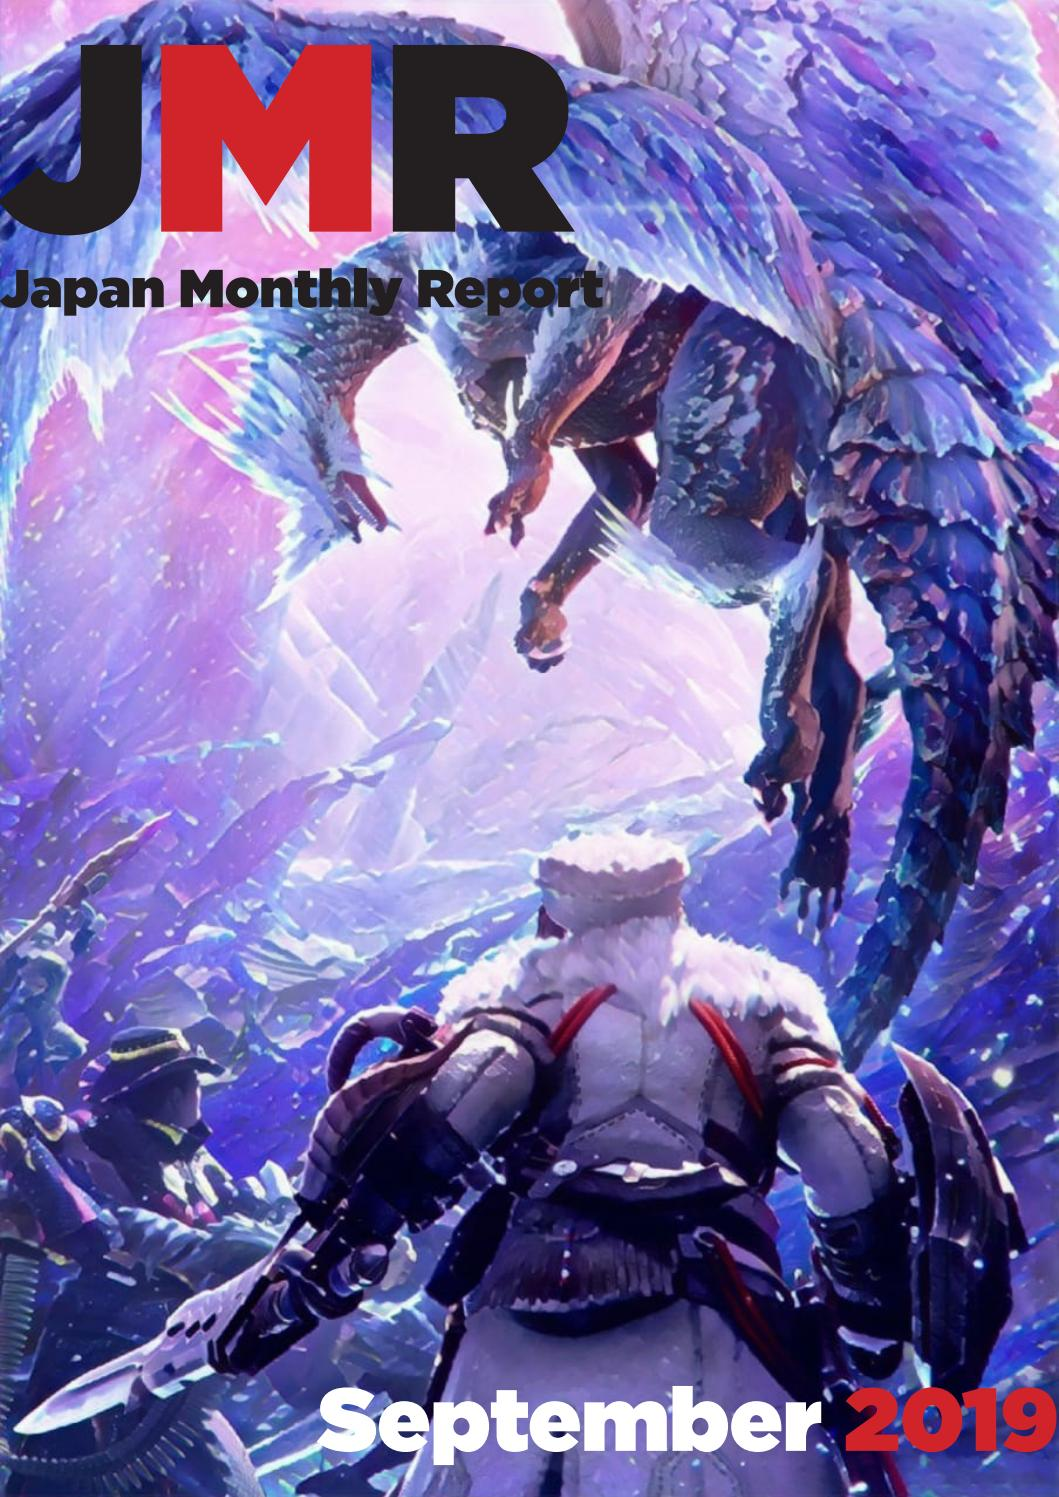 Japan Monthly Report For September 2019 By Gamedatalibrary